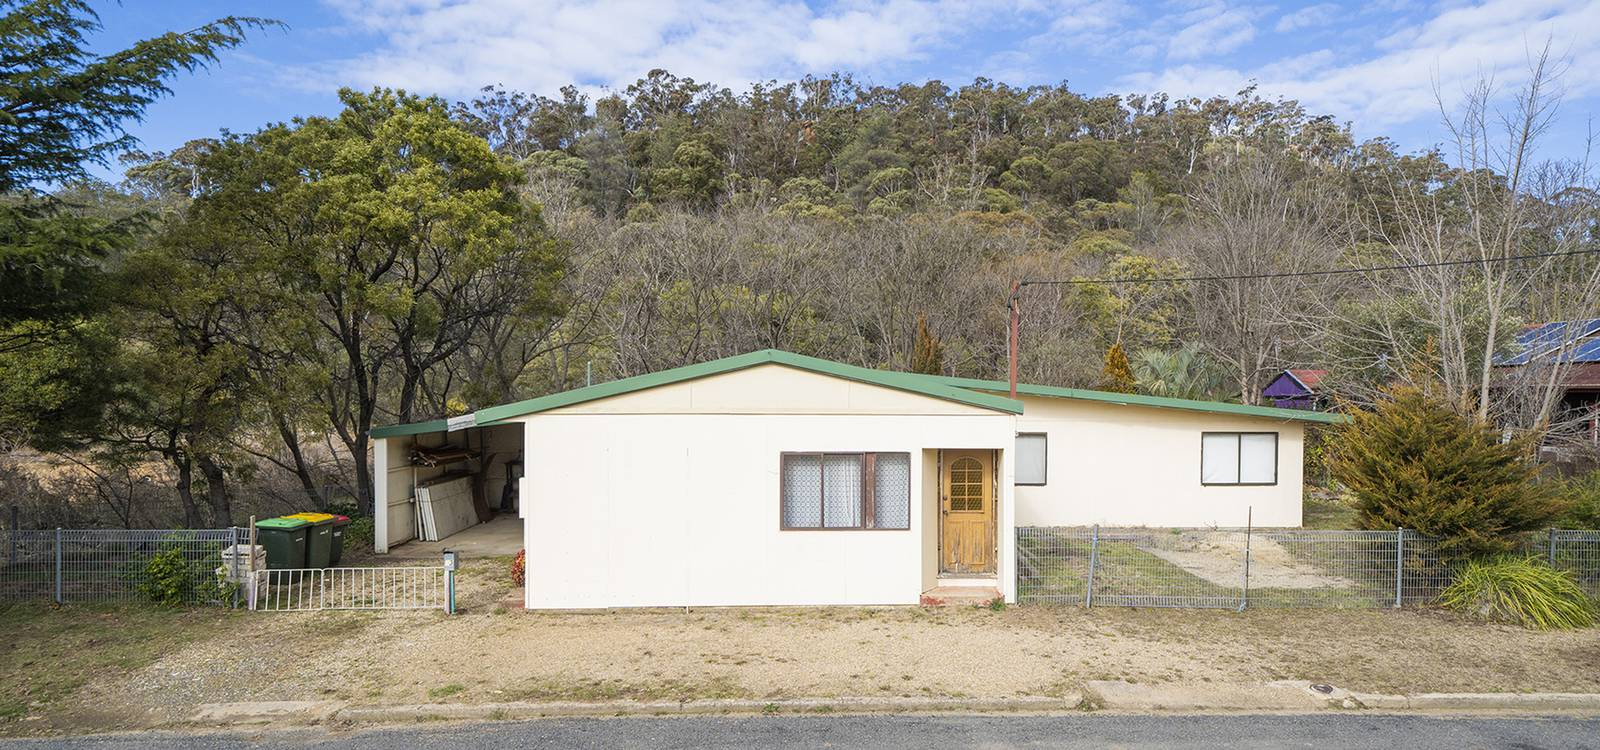 88-90 Foxlow Street CAPTAINS FLAT, NSW 2623 - photo 1